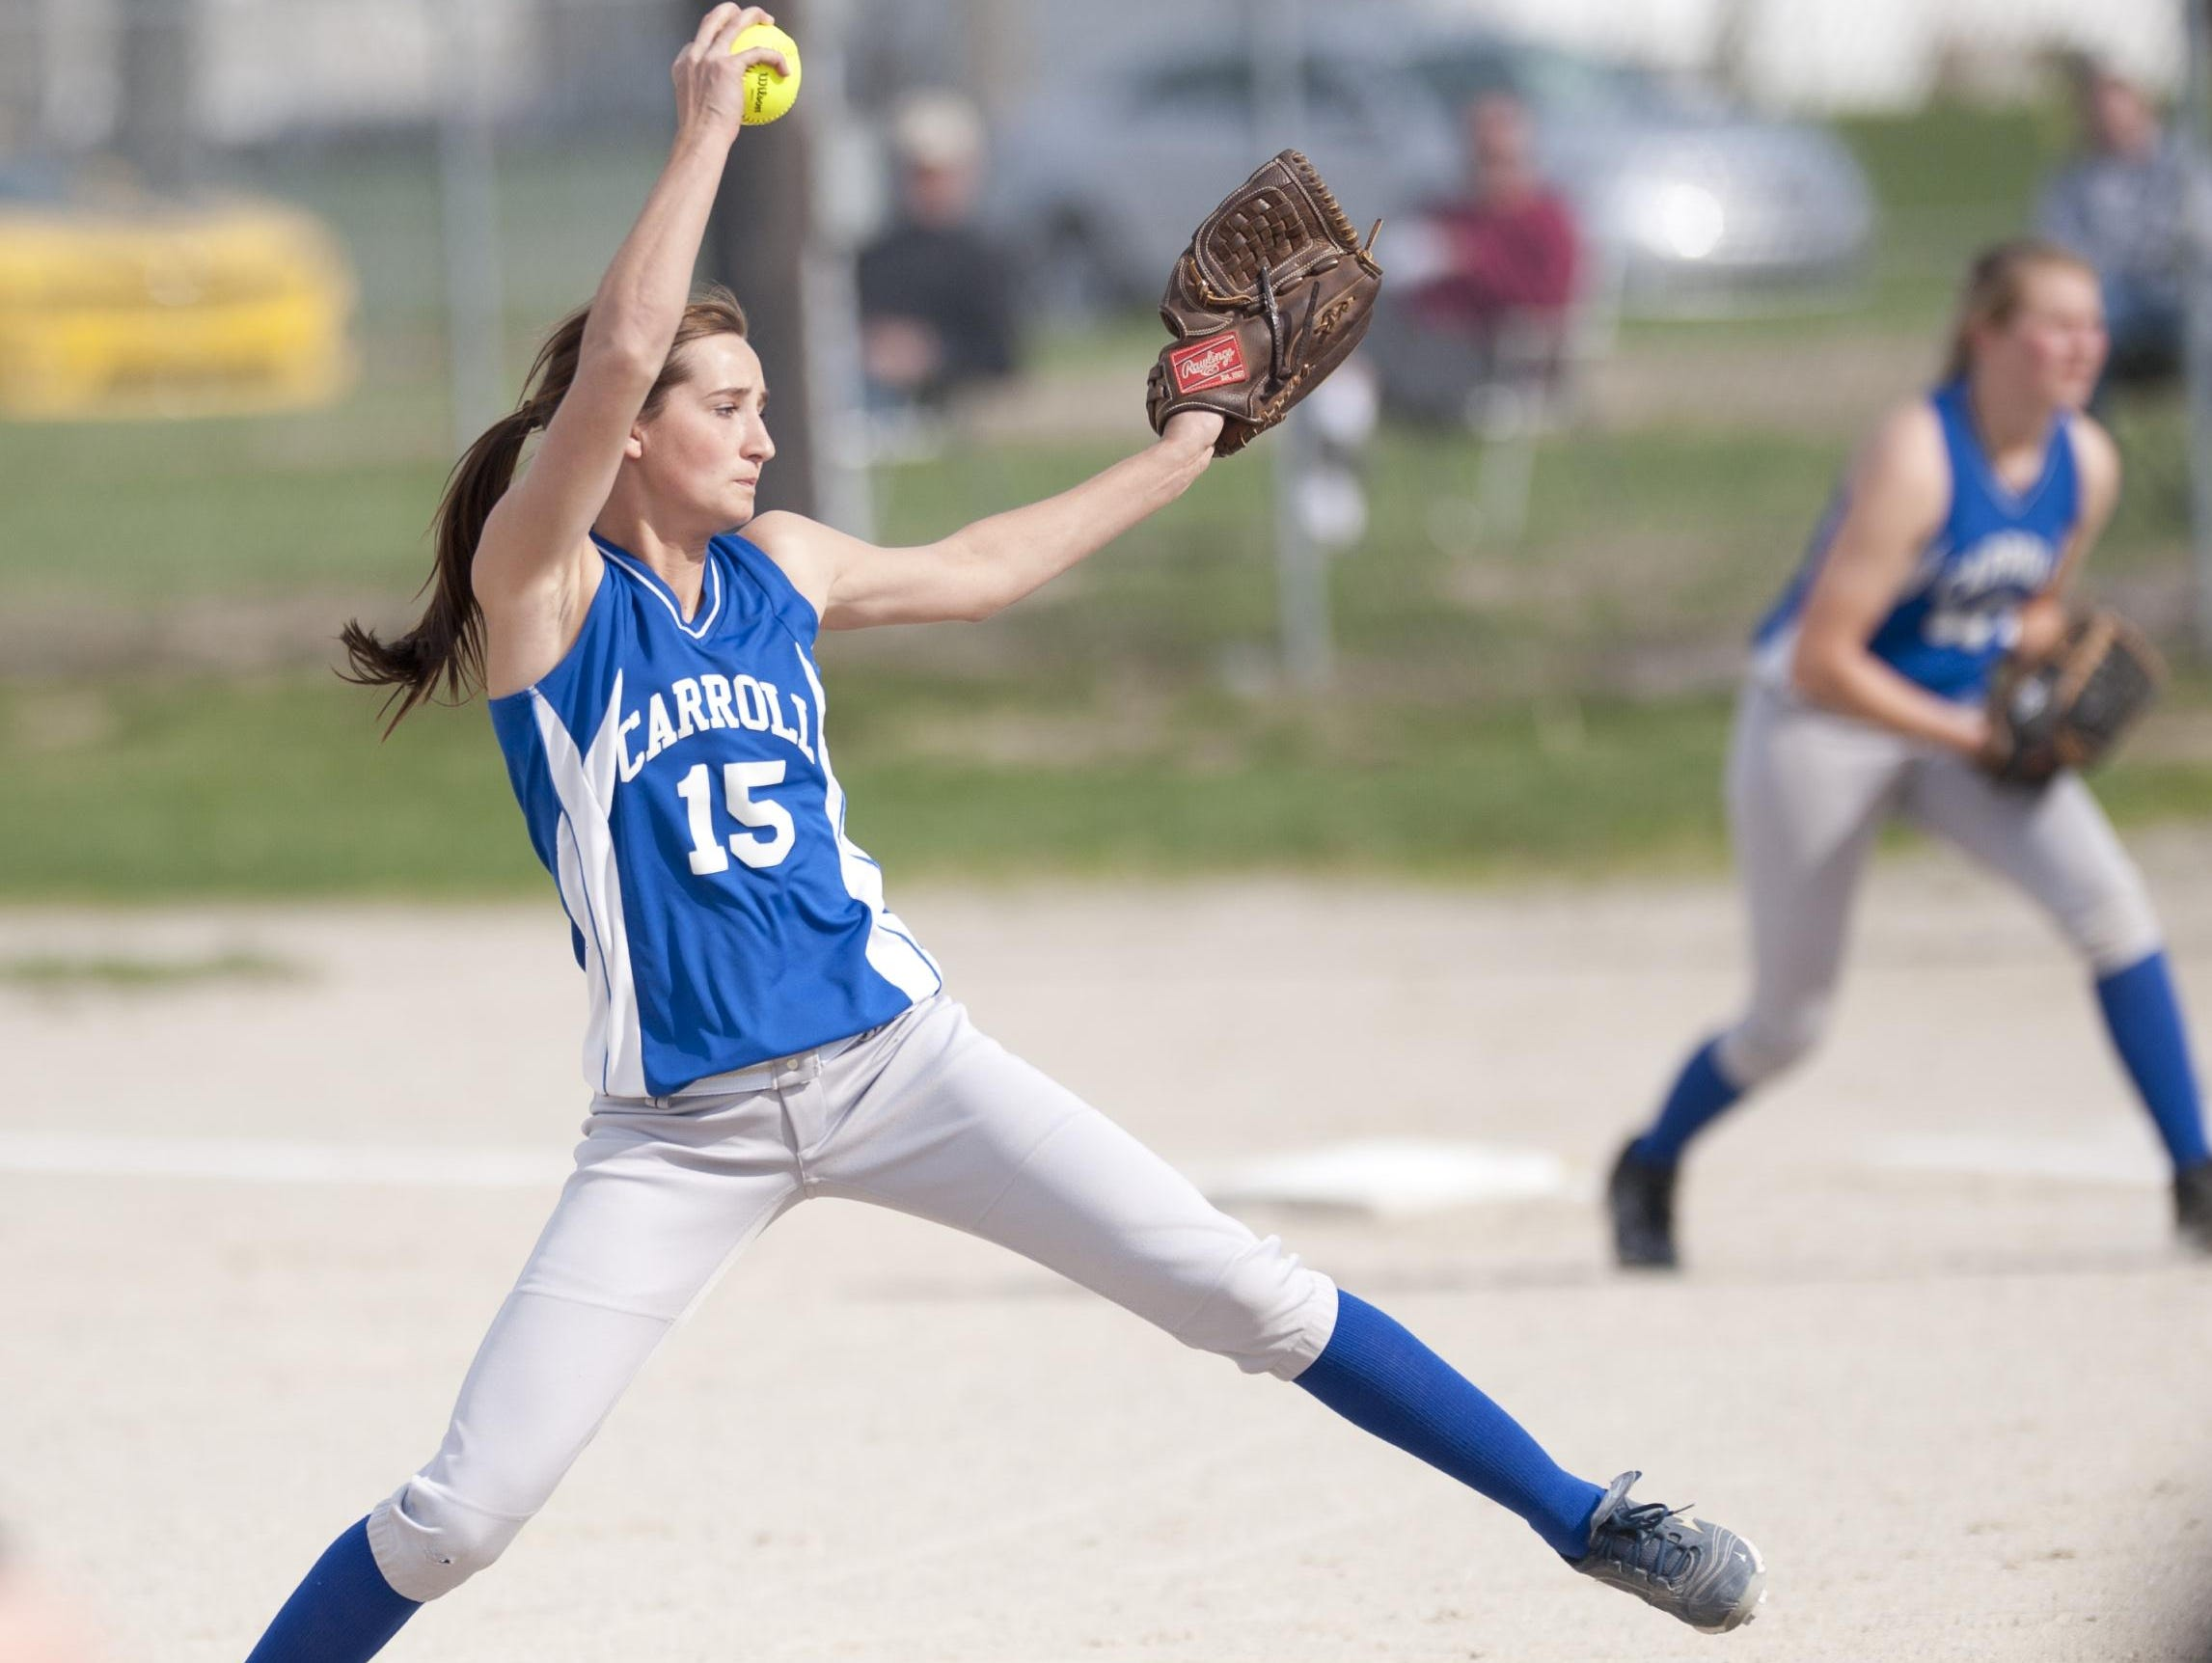 Carroll pitcher Carly Kingery.